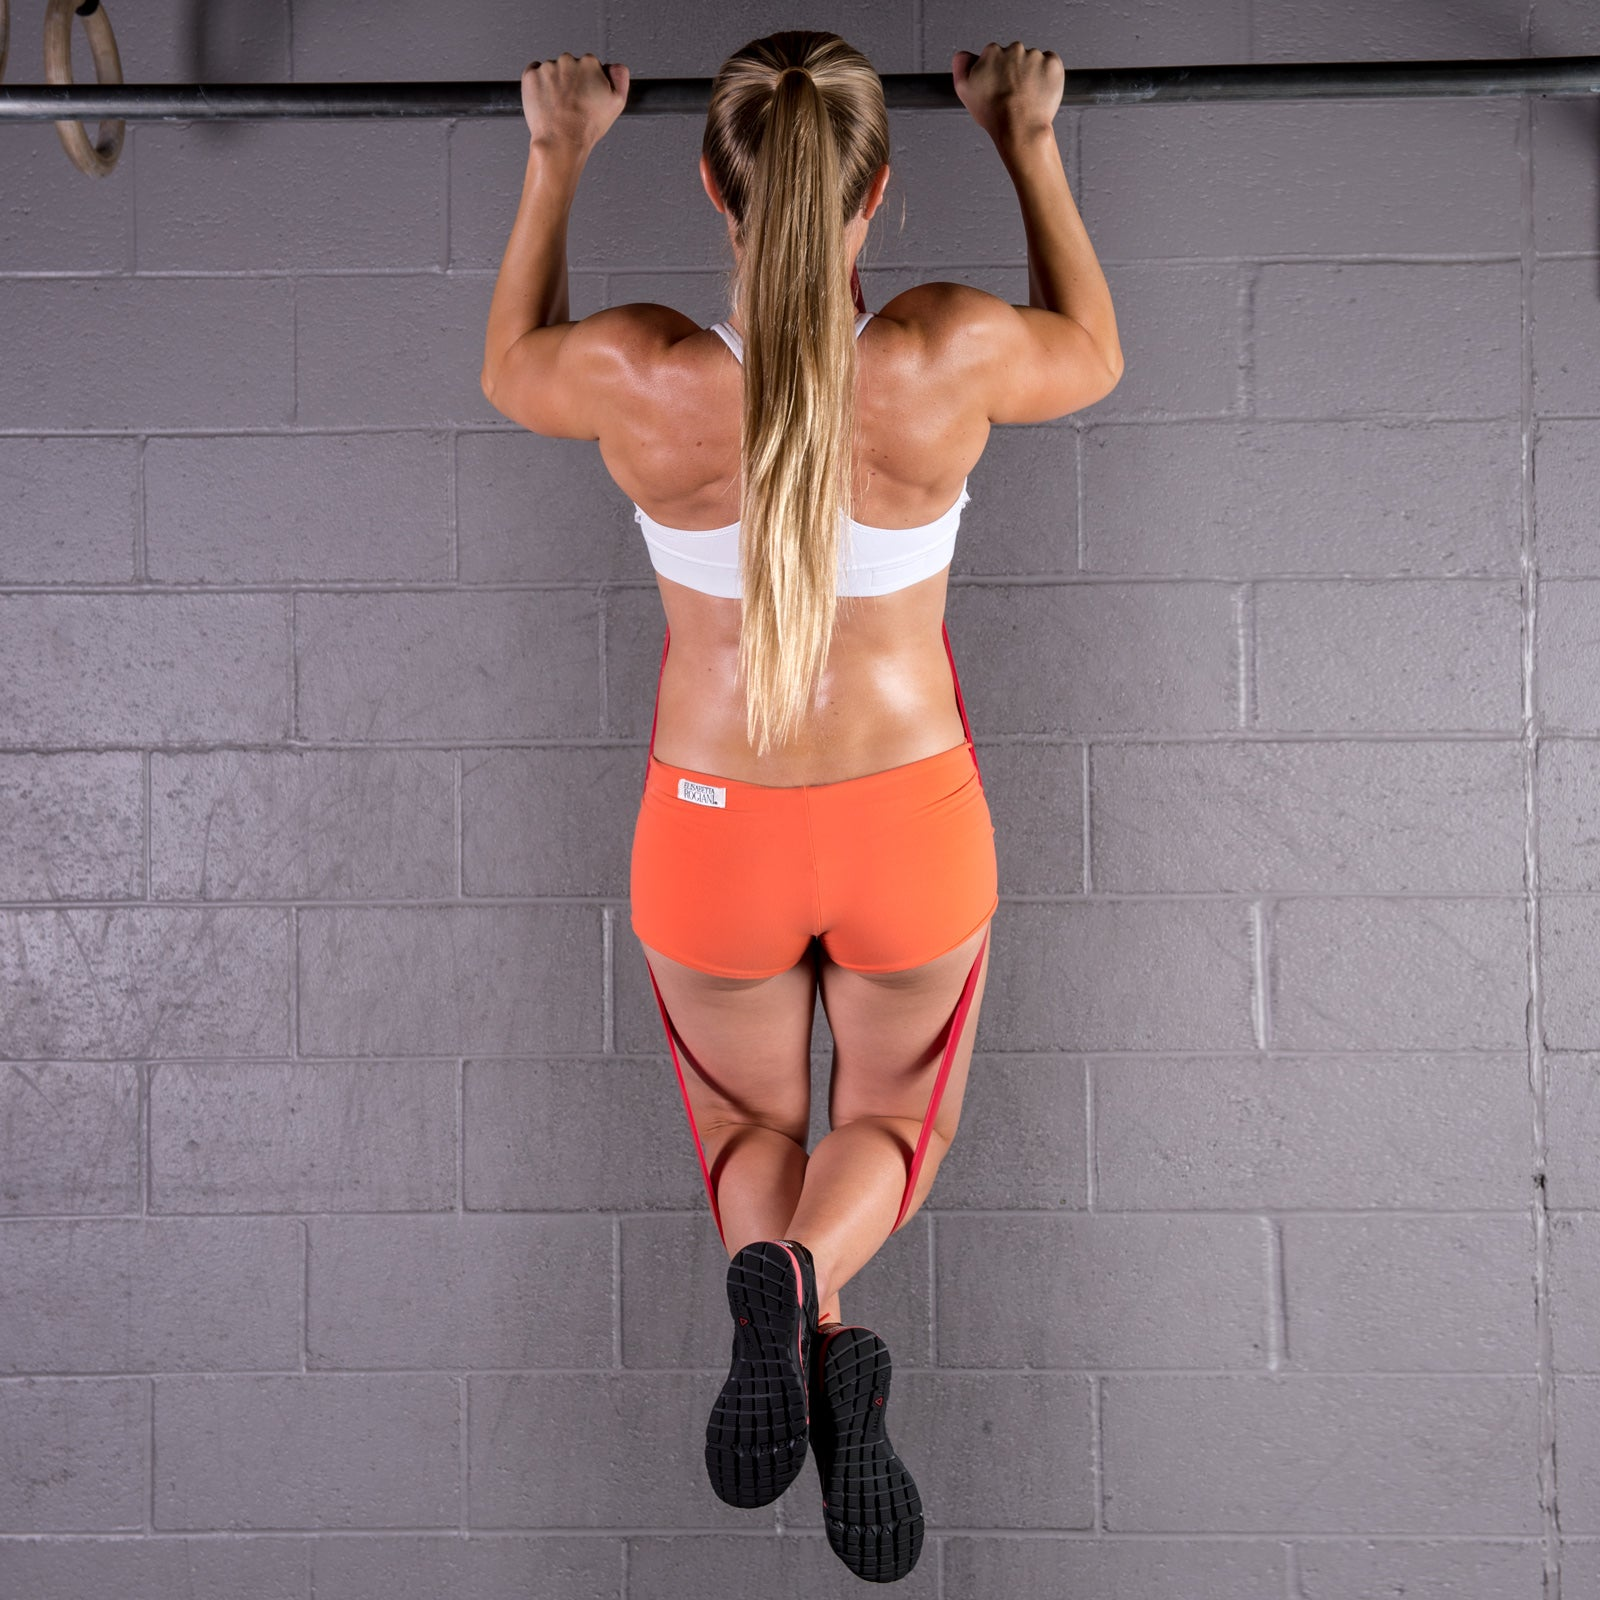 Crossfit - Pull-ups using resistance bands